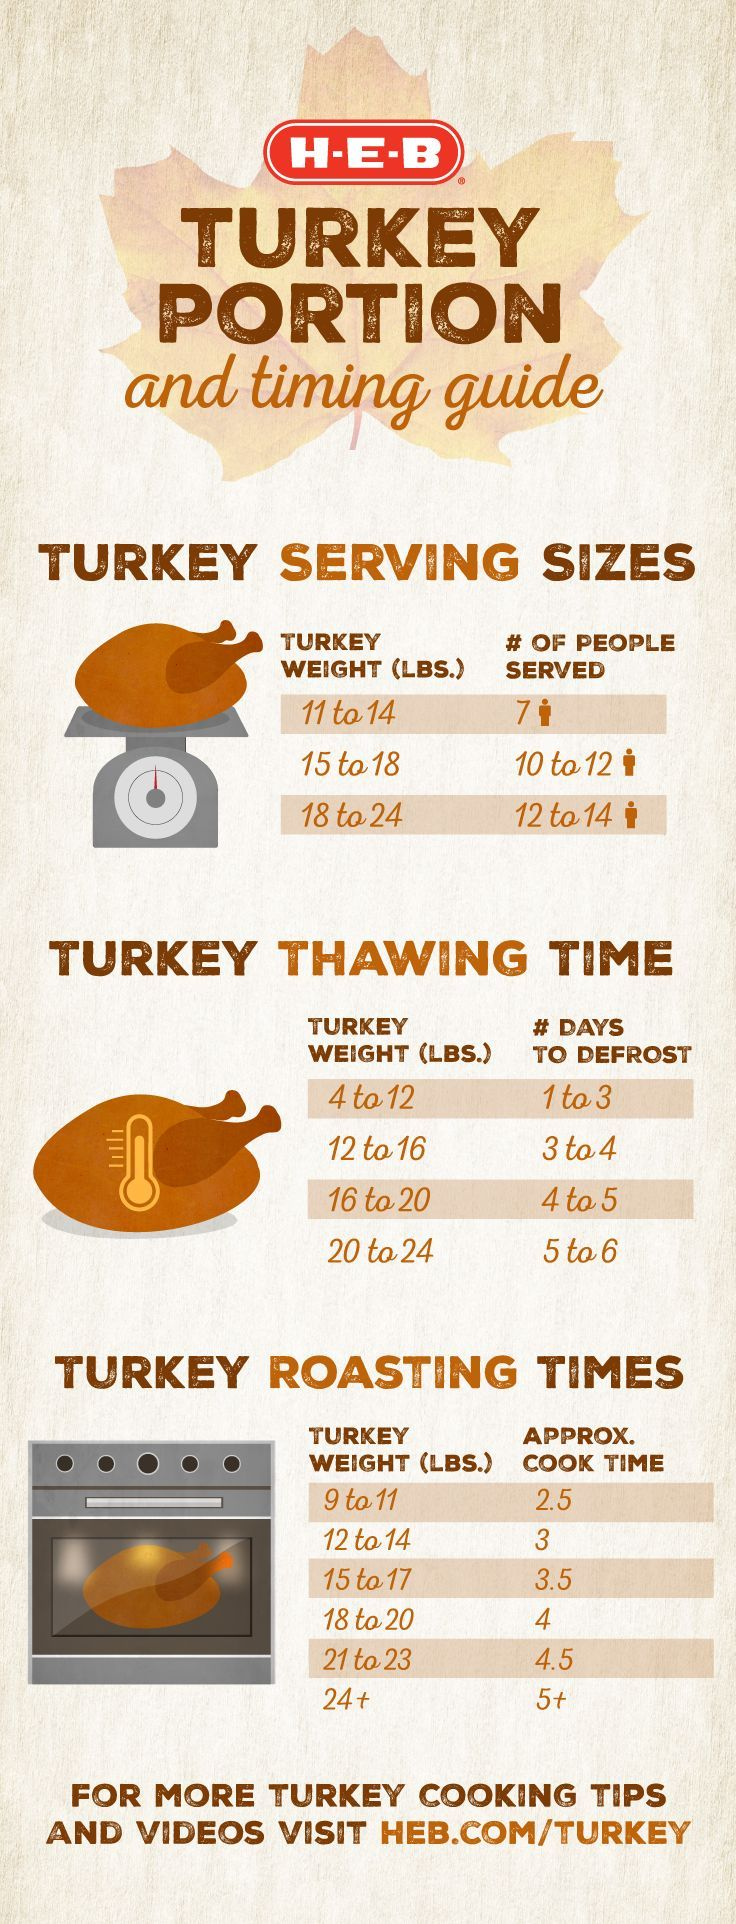 Hosting a Thanksgiving dinner and not sure how to prepare? Don't stress! Getting ready for the big holiday is easy with our turkey timing and portion guide. Learn serving sizes, thawing and cooking times, recipes, and more at http://heb.com/turkey!